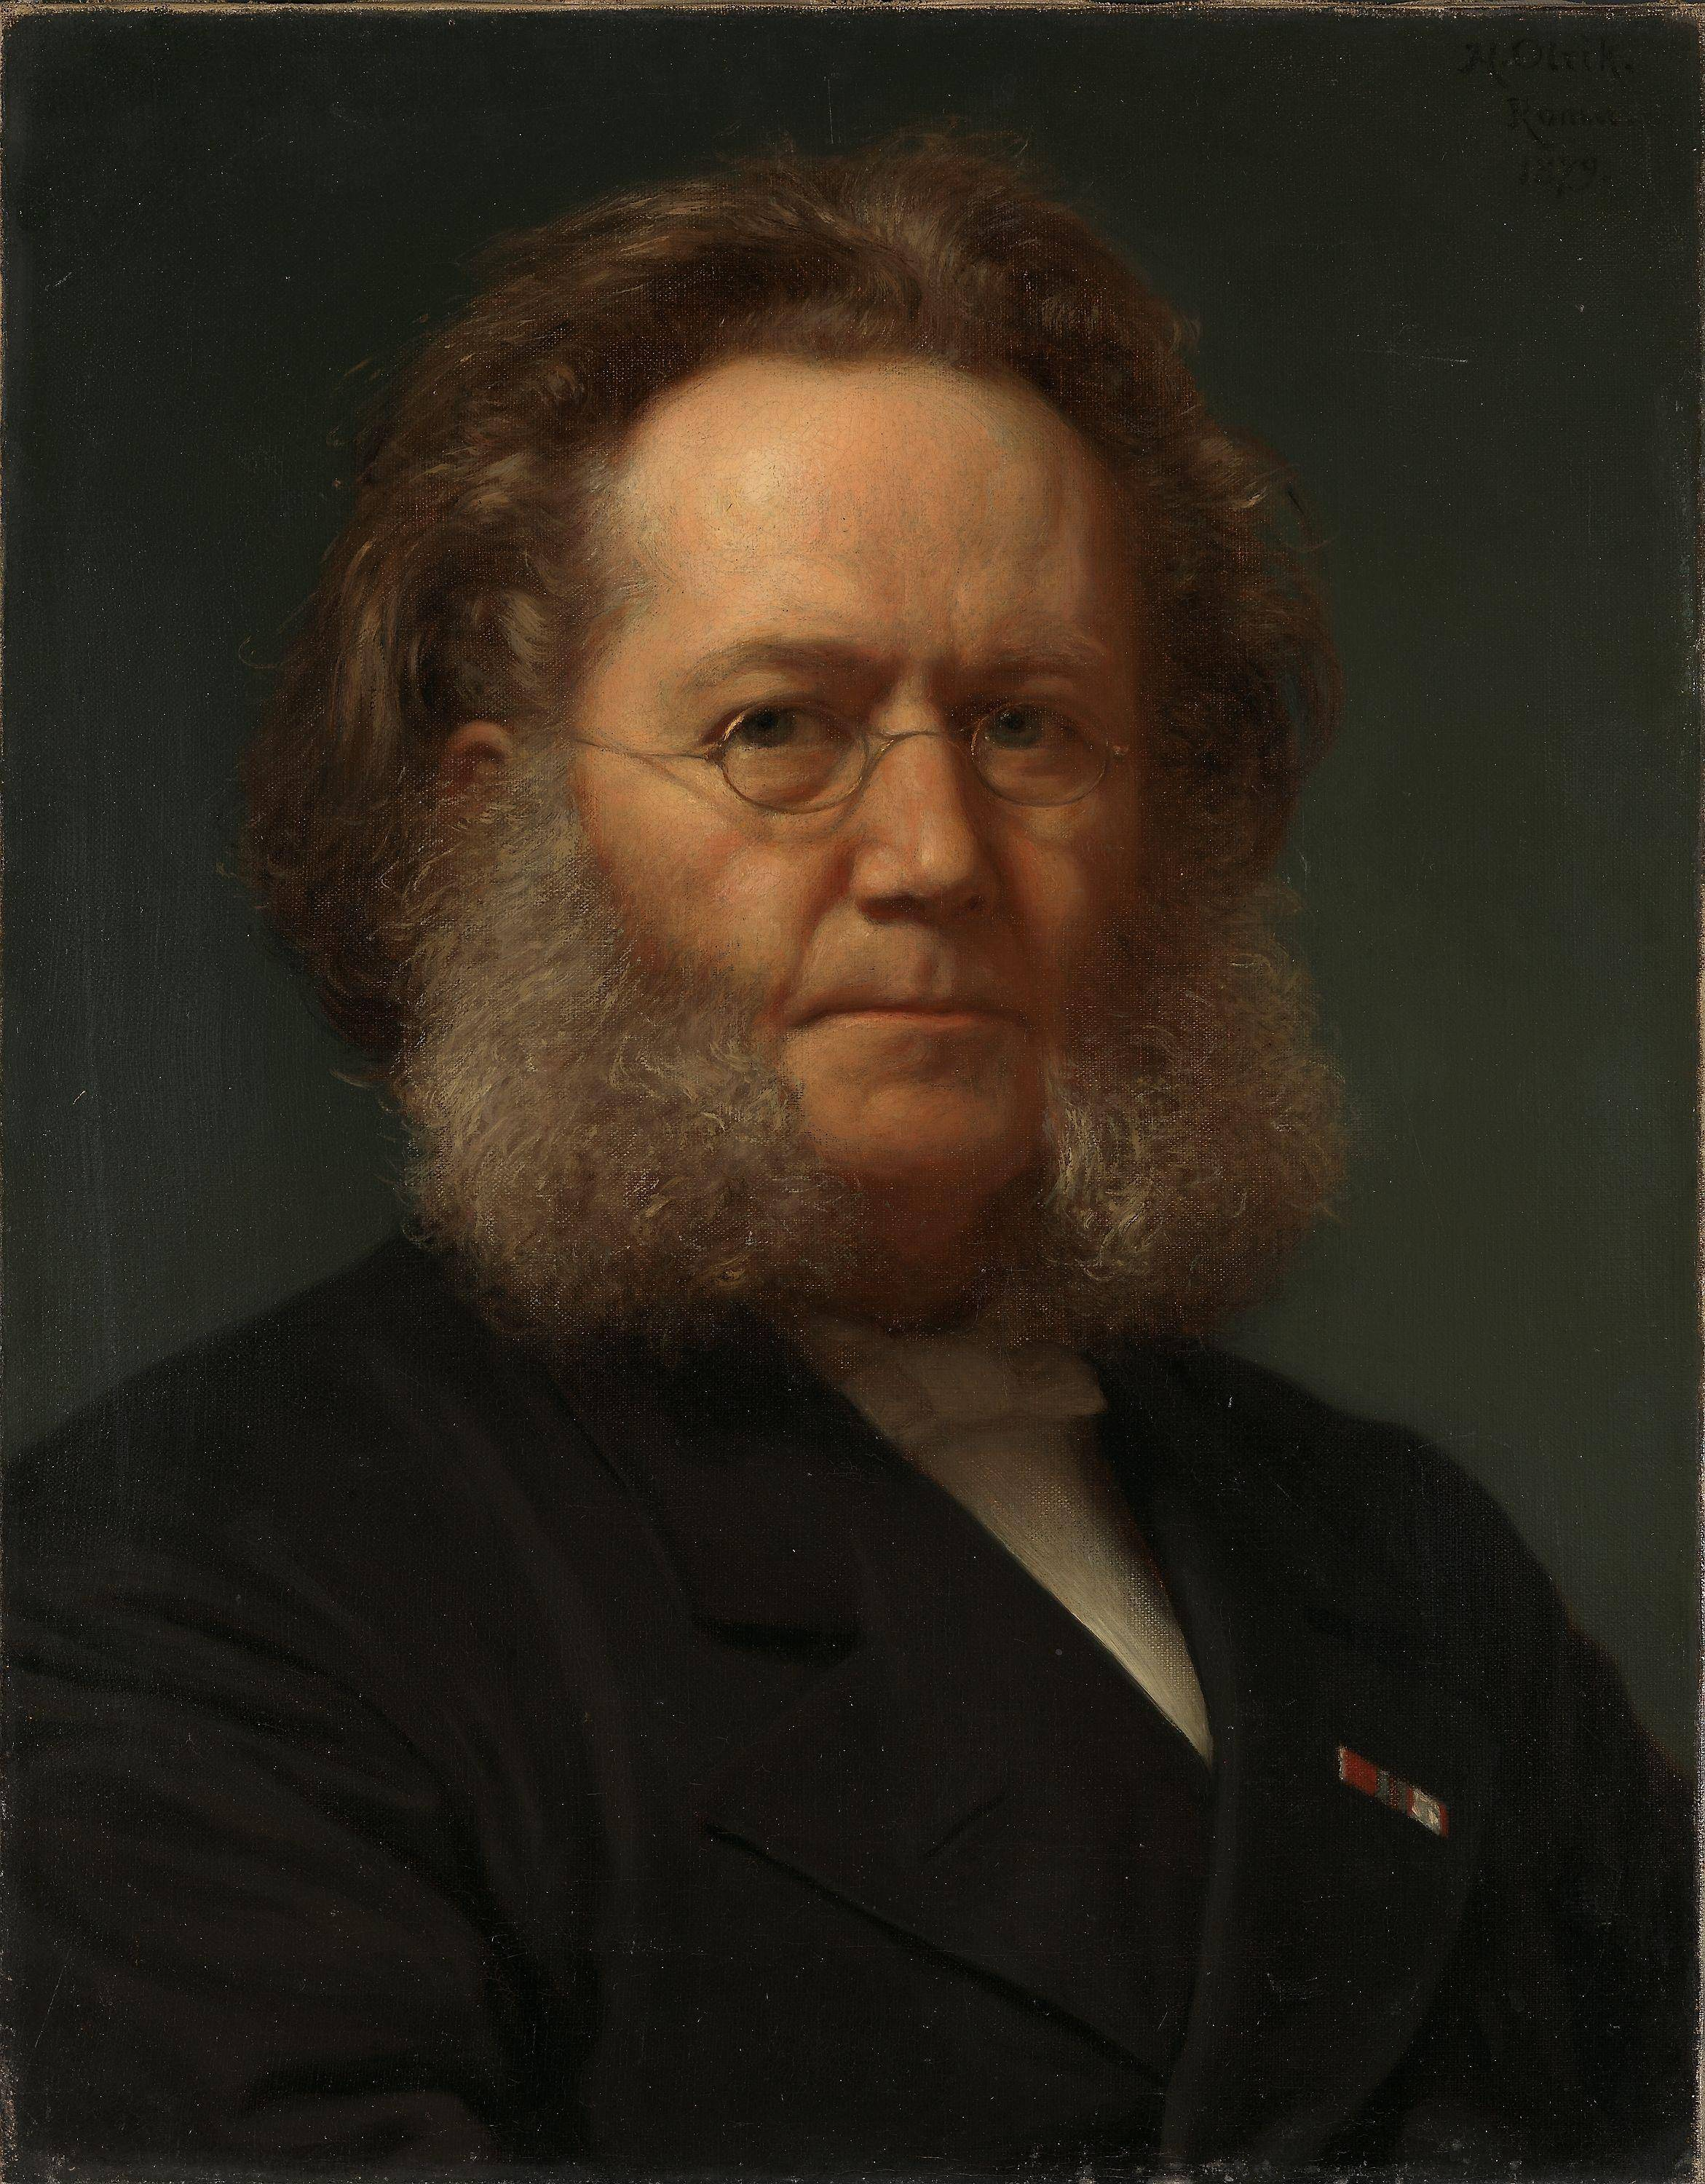 English: Portrait of Henrik Ibsen by Henrik Olrik